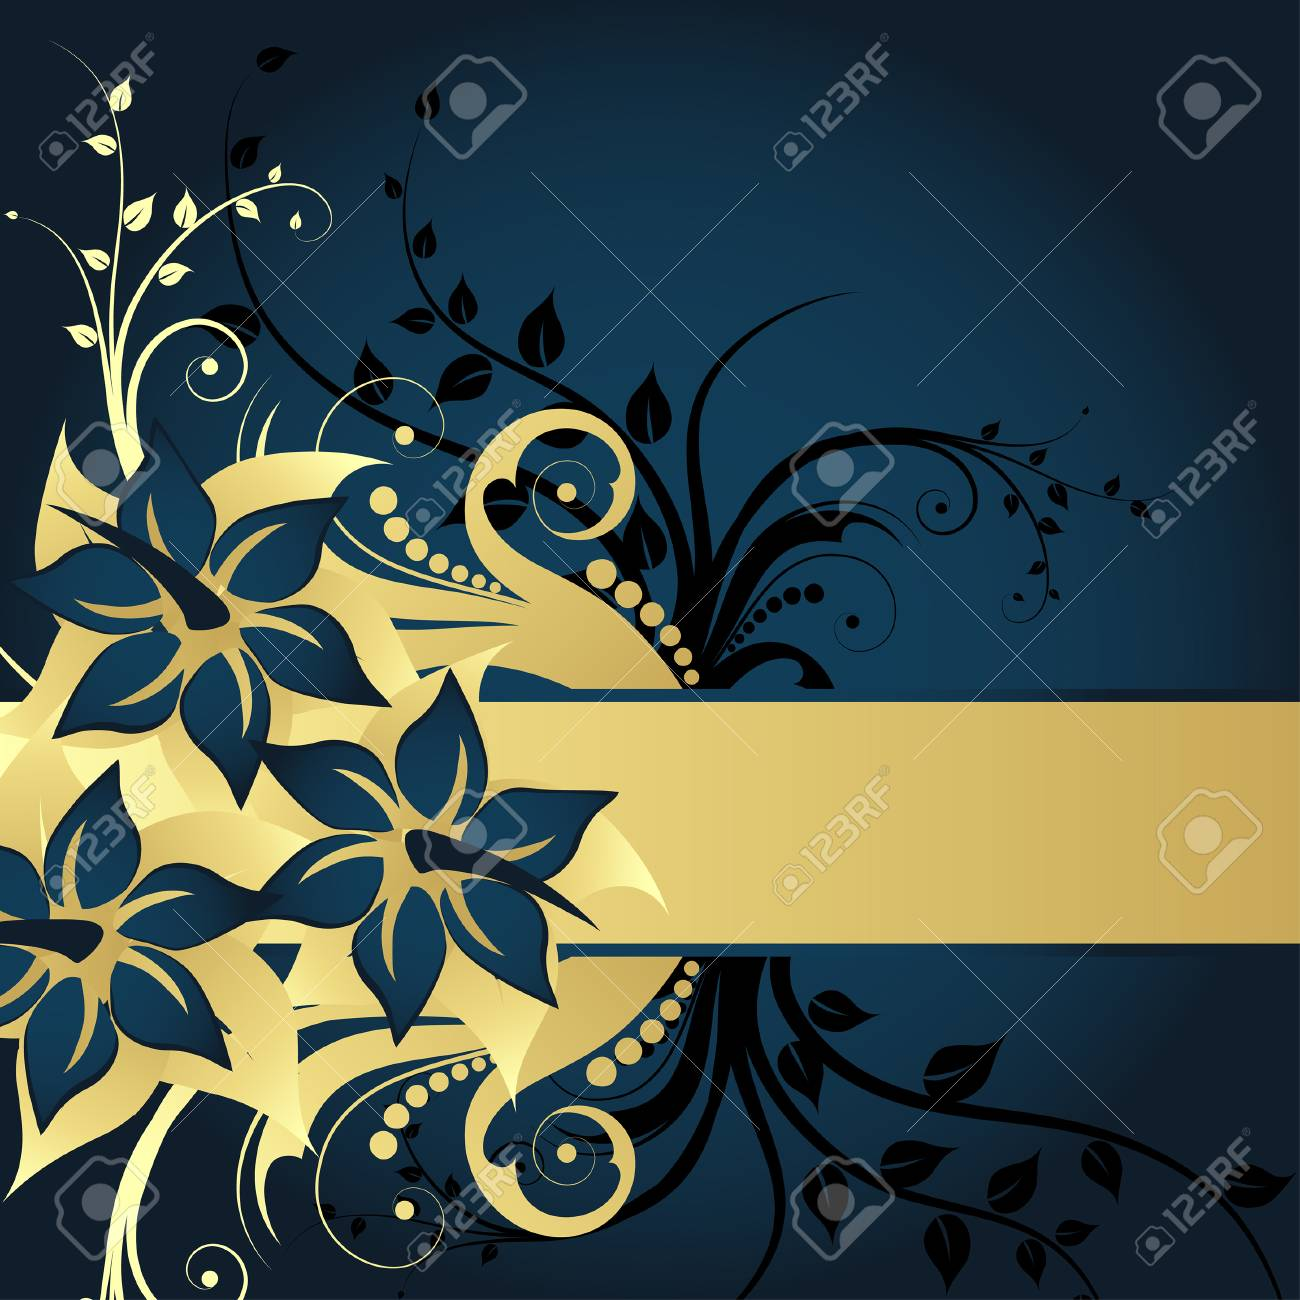 Floral background for design use. Vector illustration. Stock Vector - 5735236